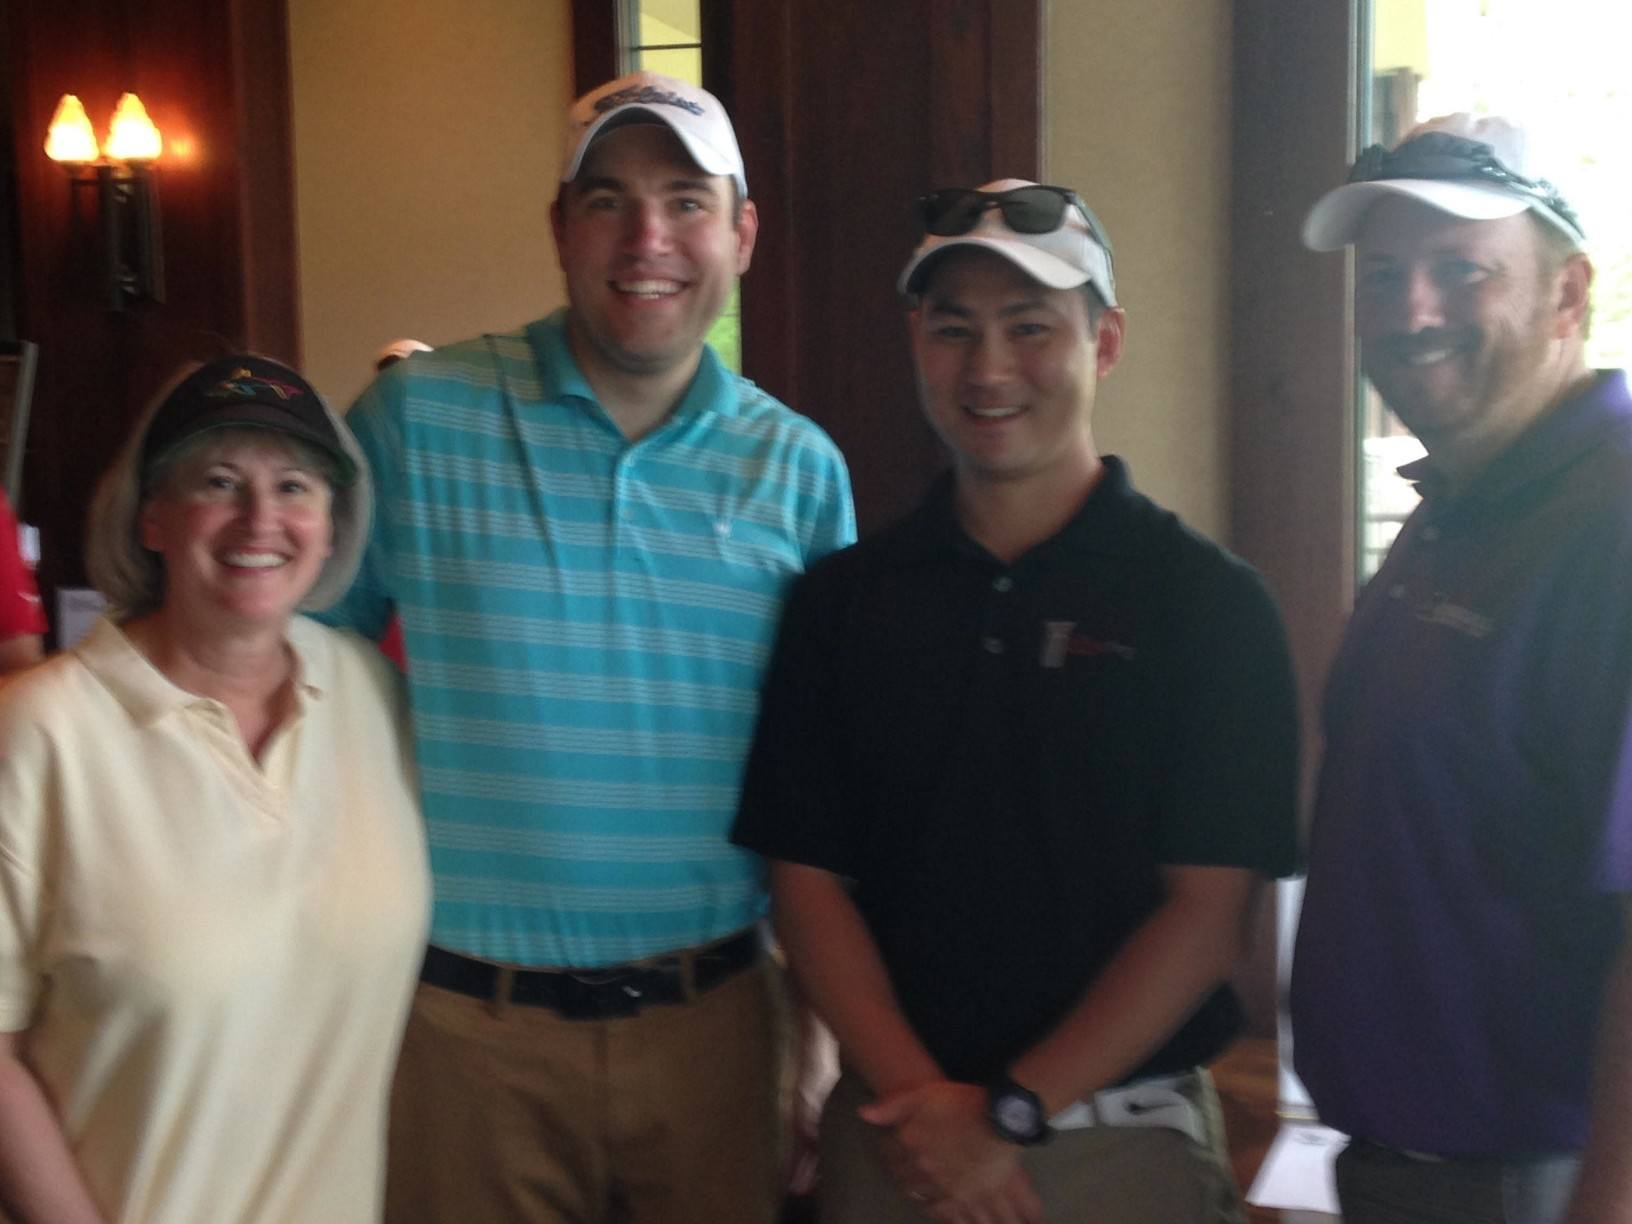 The Chamber's Annual Golf Classic